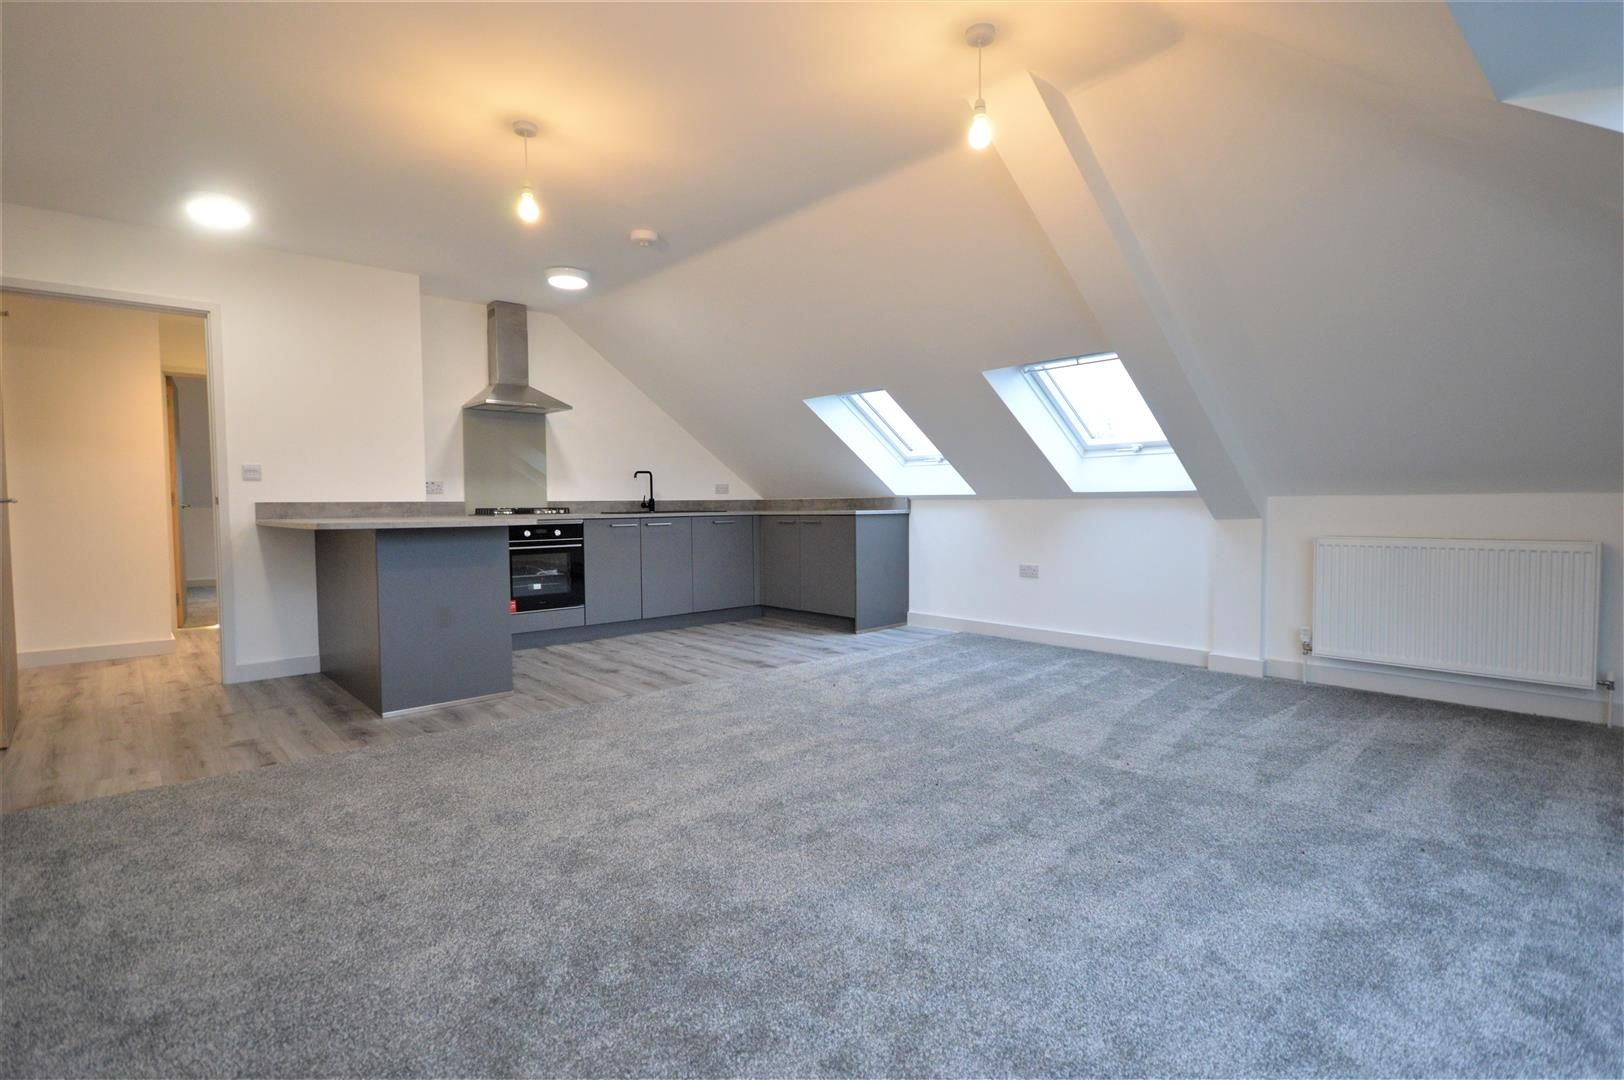 1 bed apartment for sale in Leominster, HR6